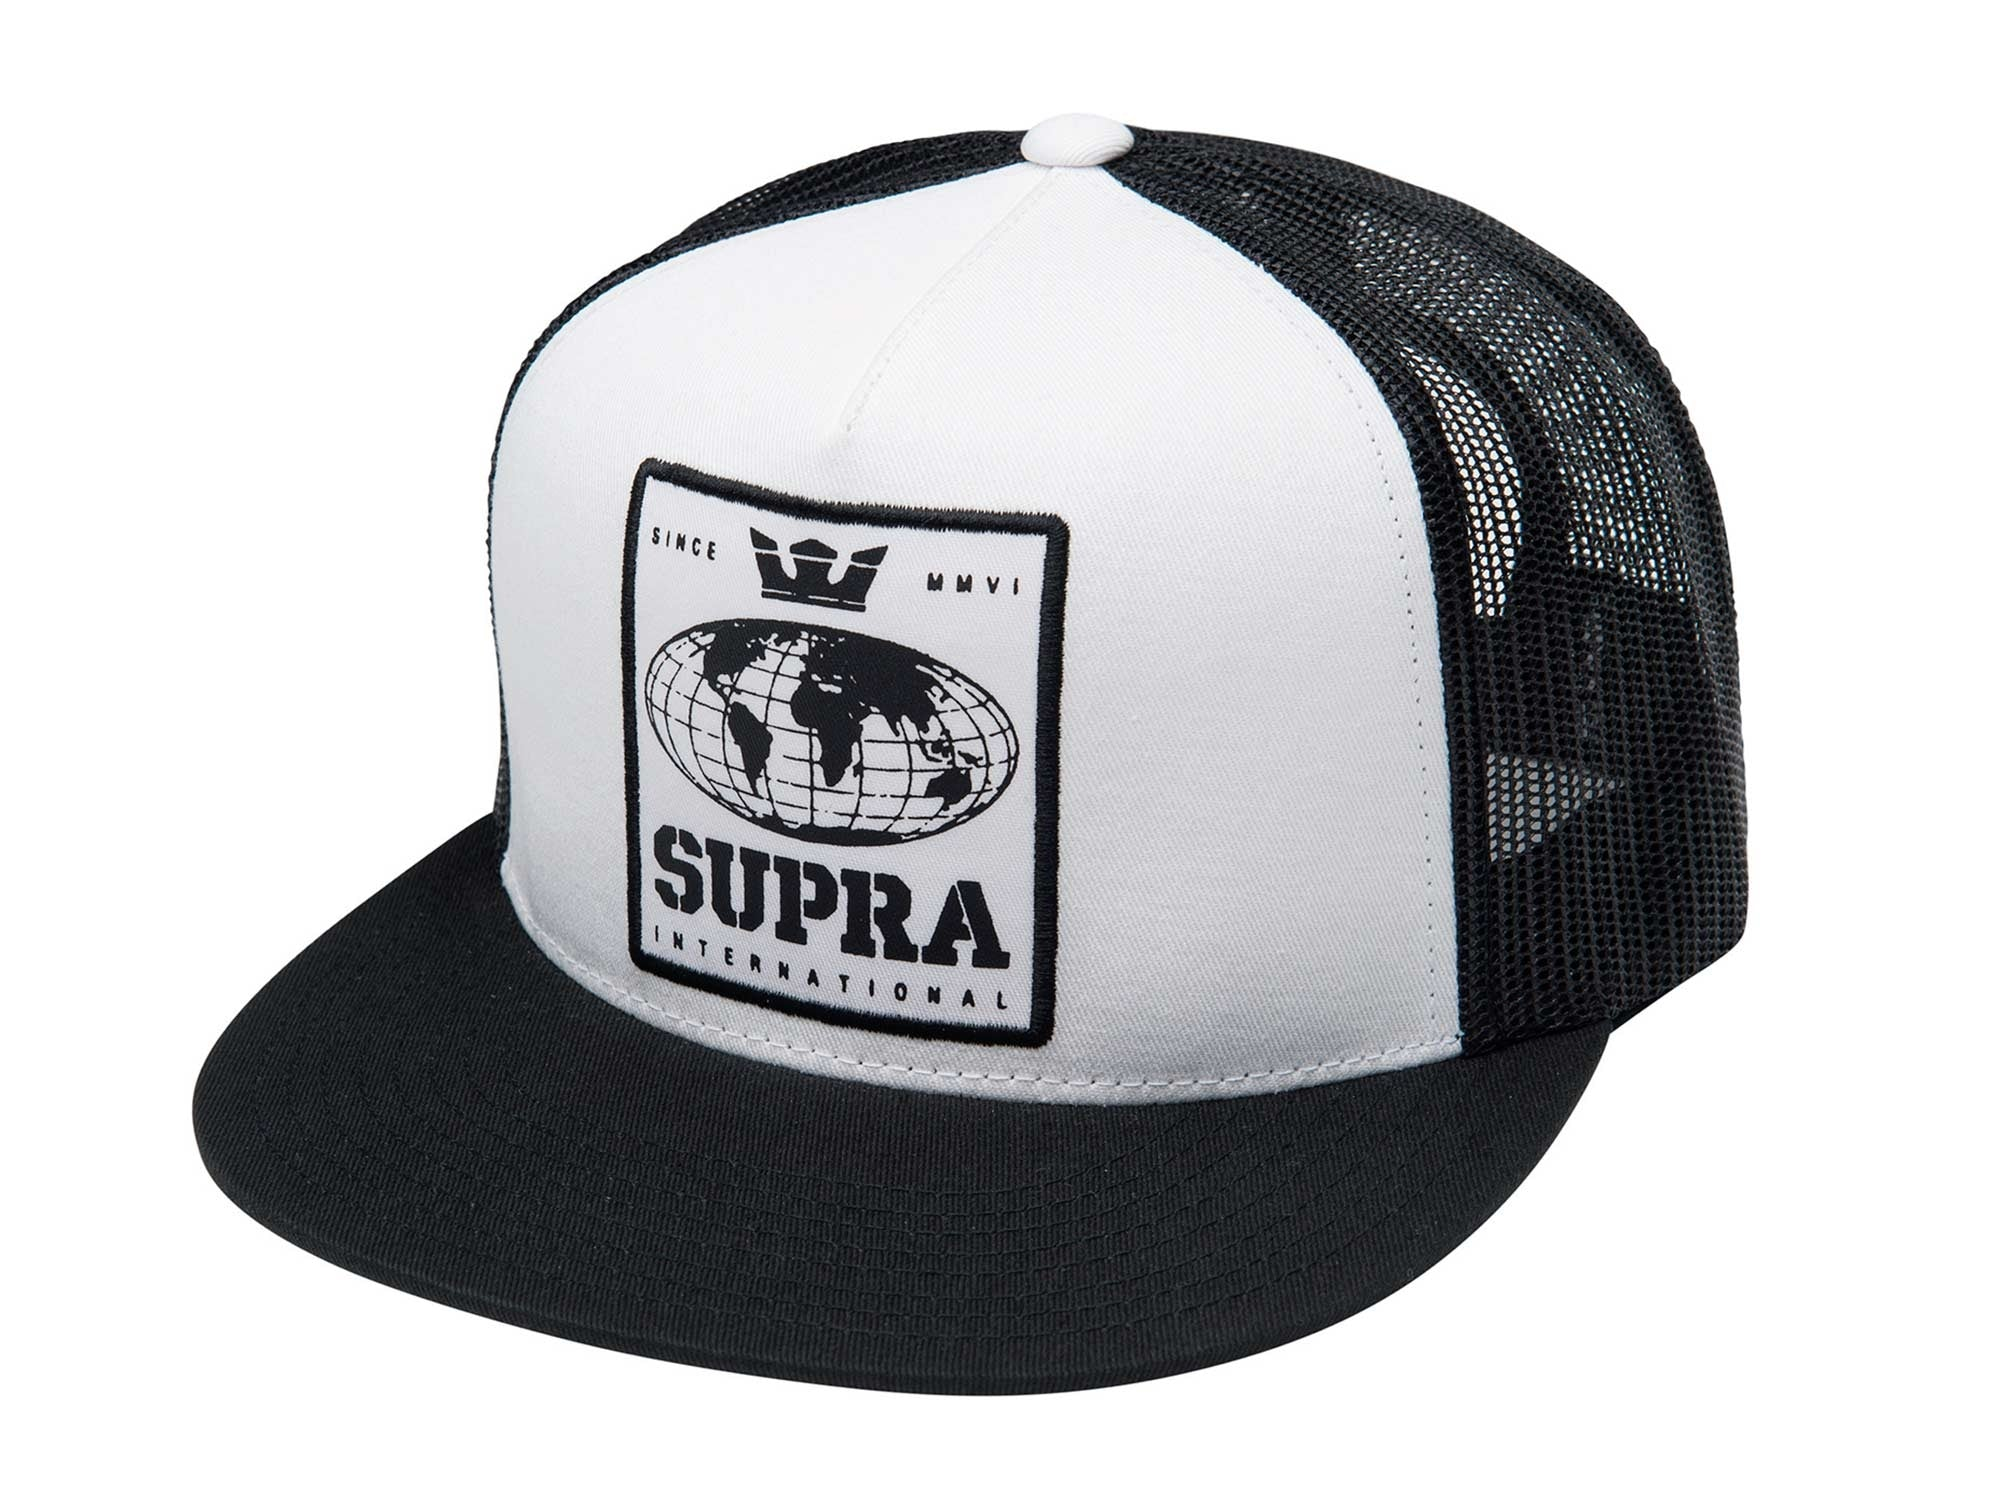 Jockey Supra Internations Trucker Unisex.